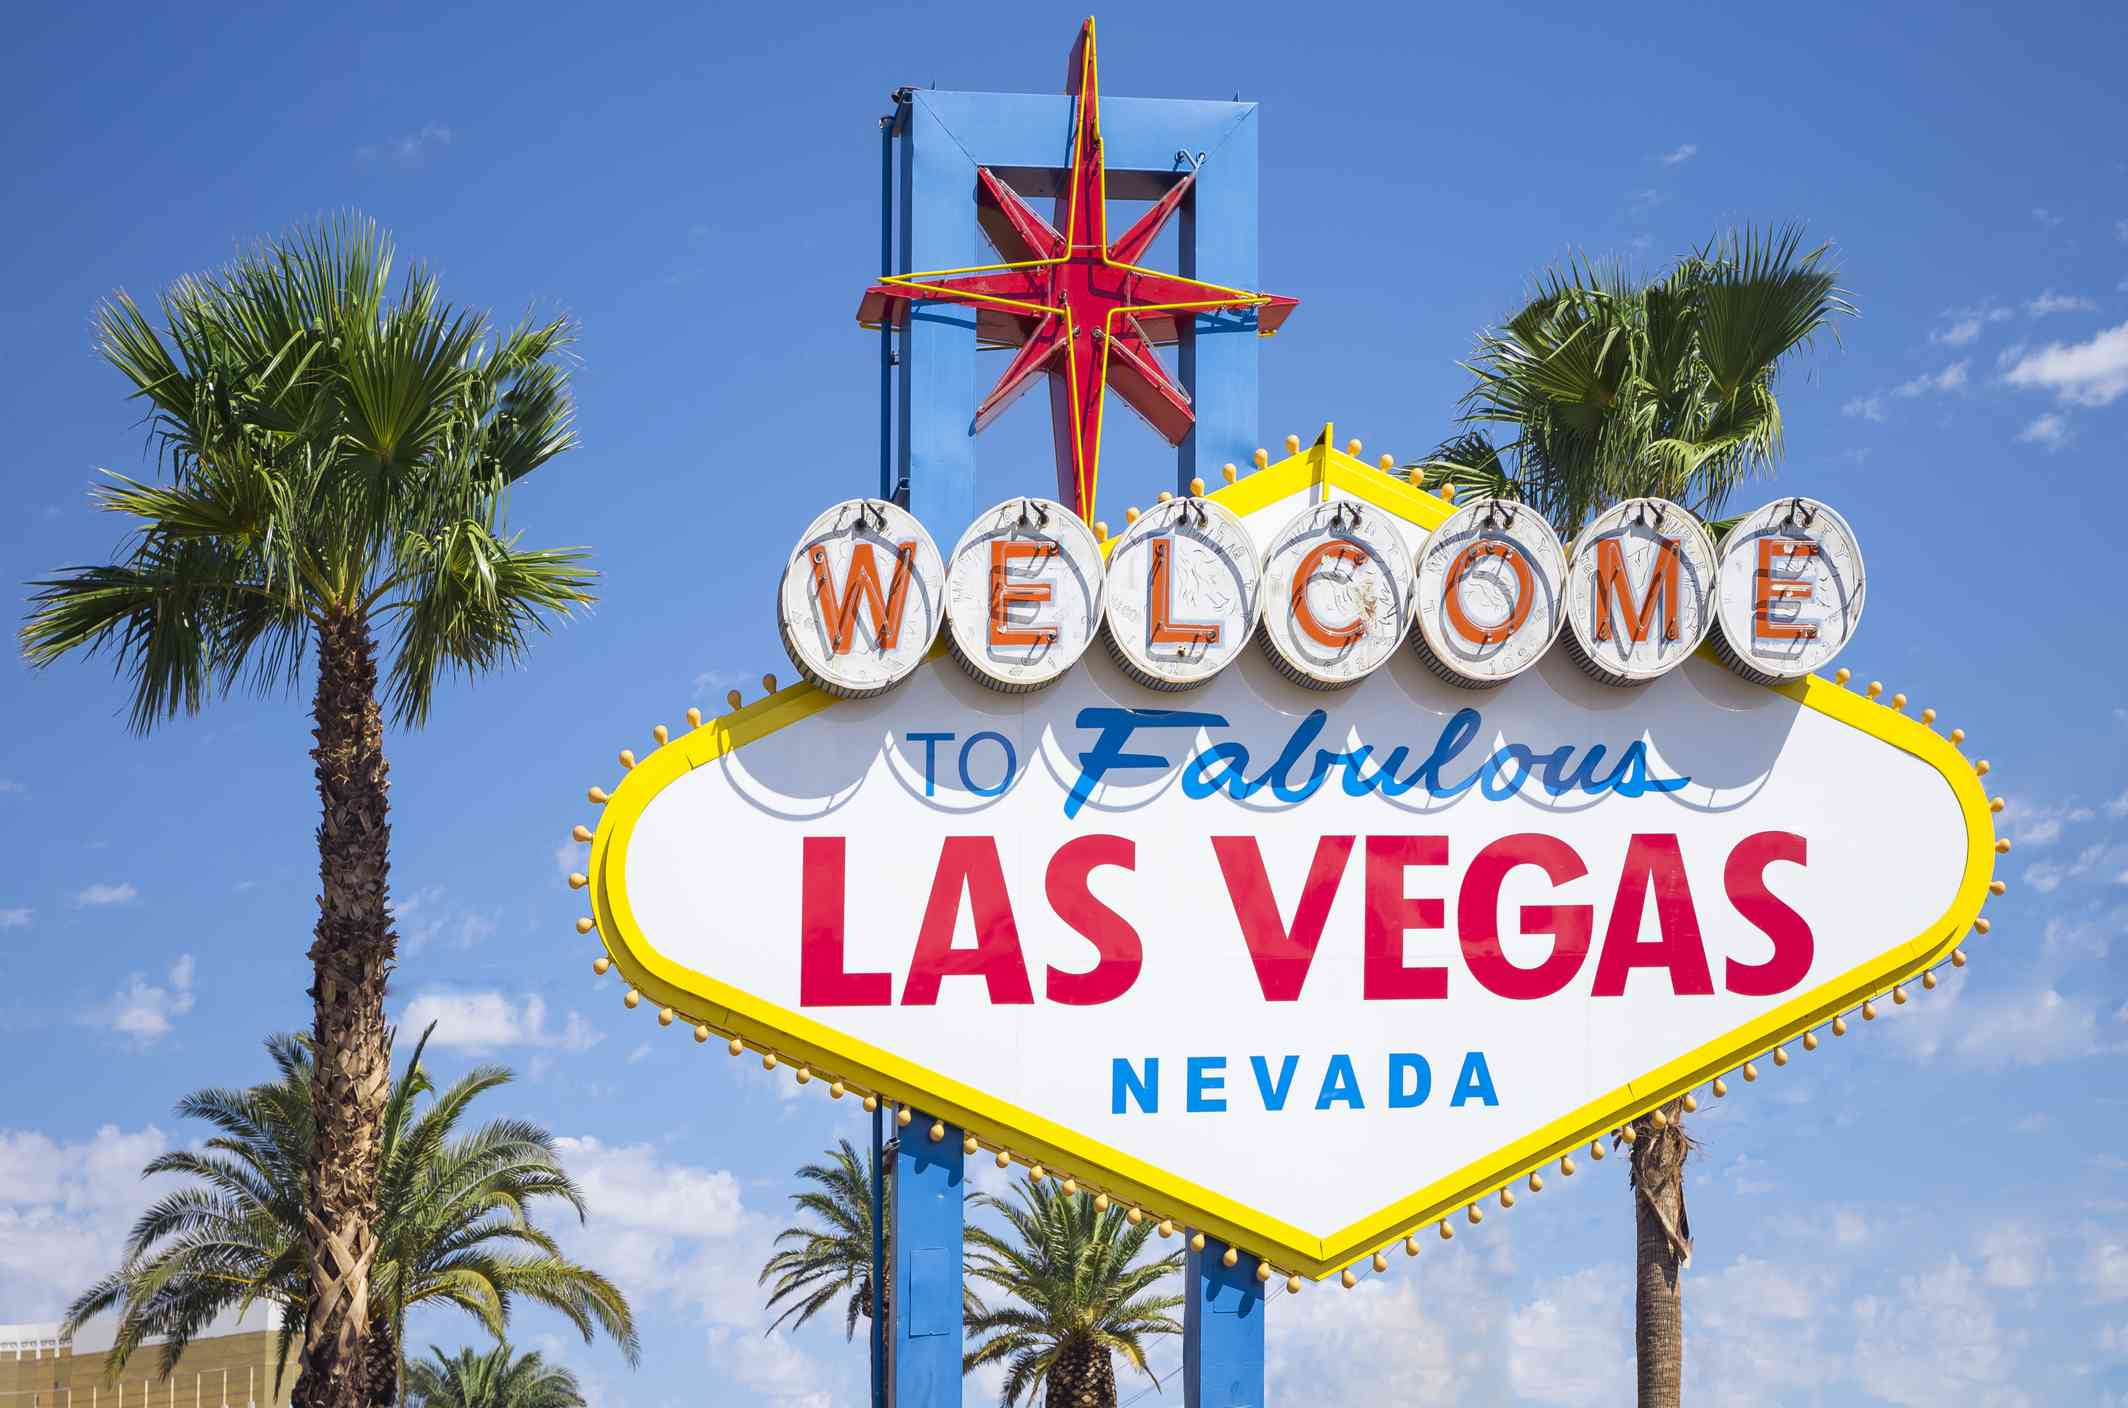 How to get from Denver to Las Vegas